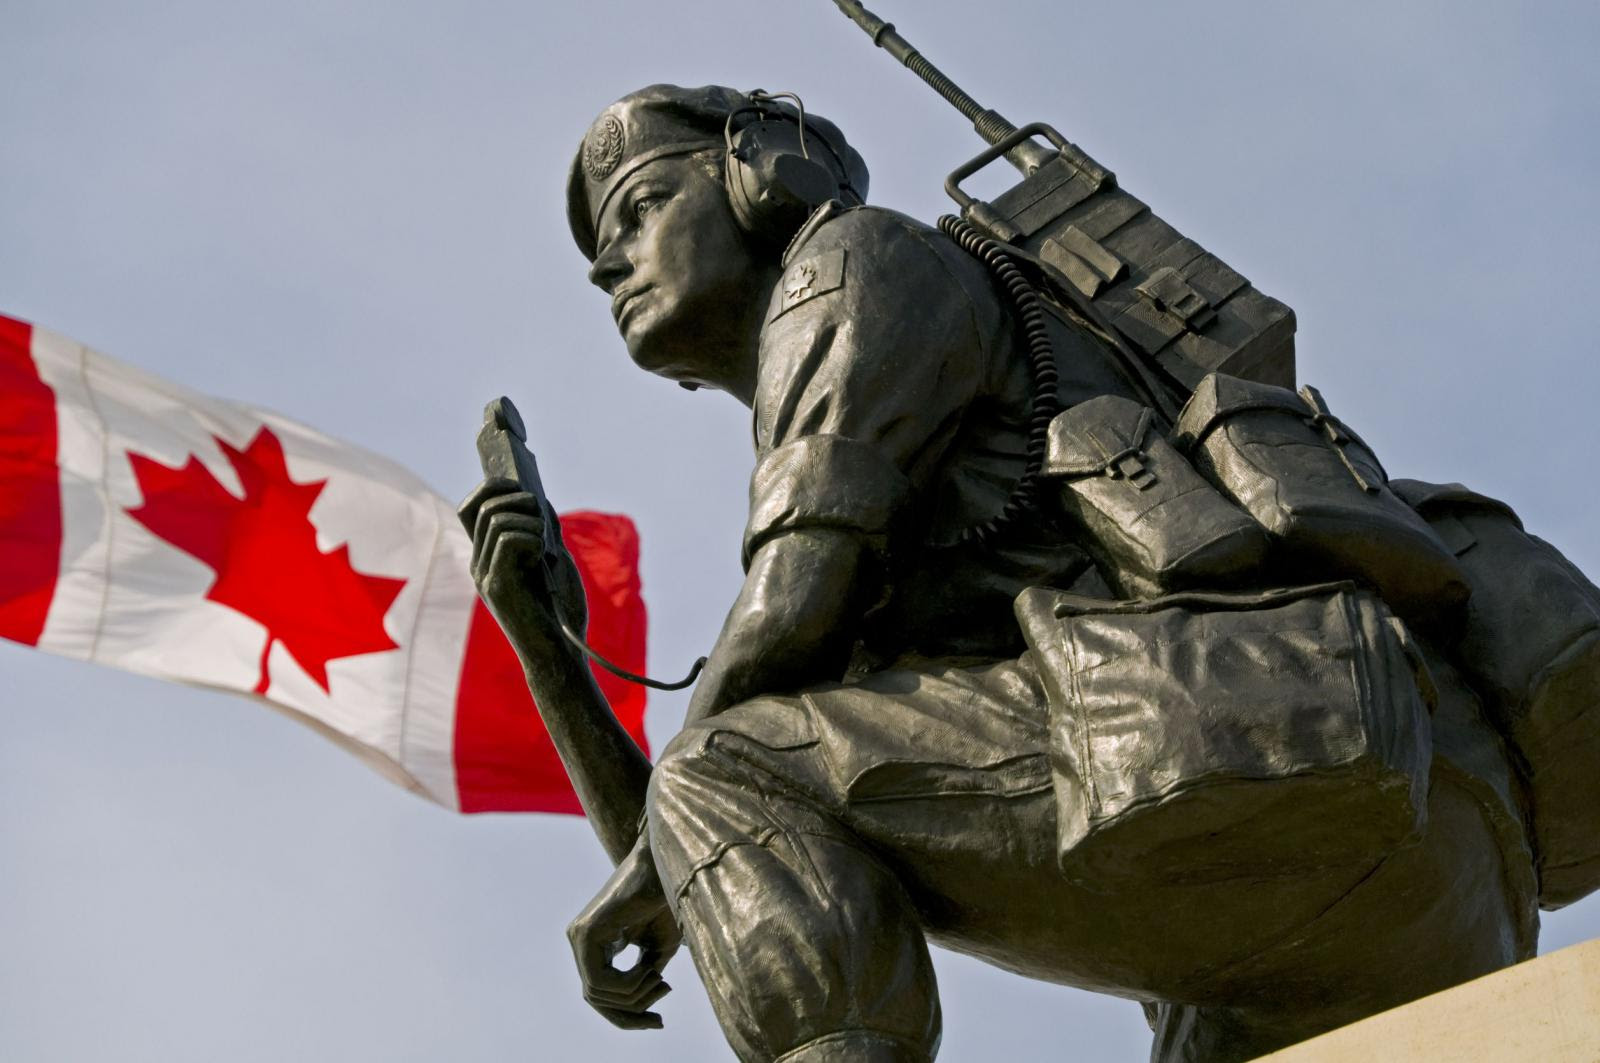 Canada introduces a new era in peacekeeping